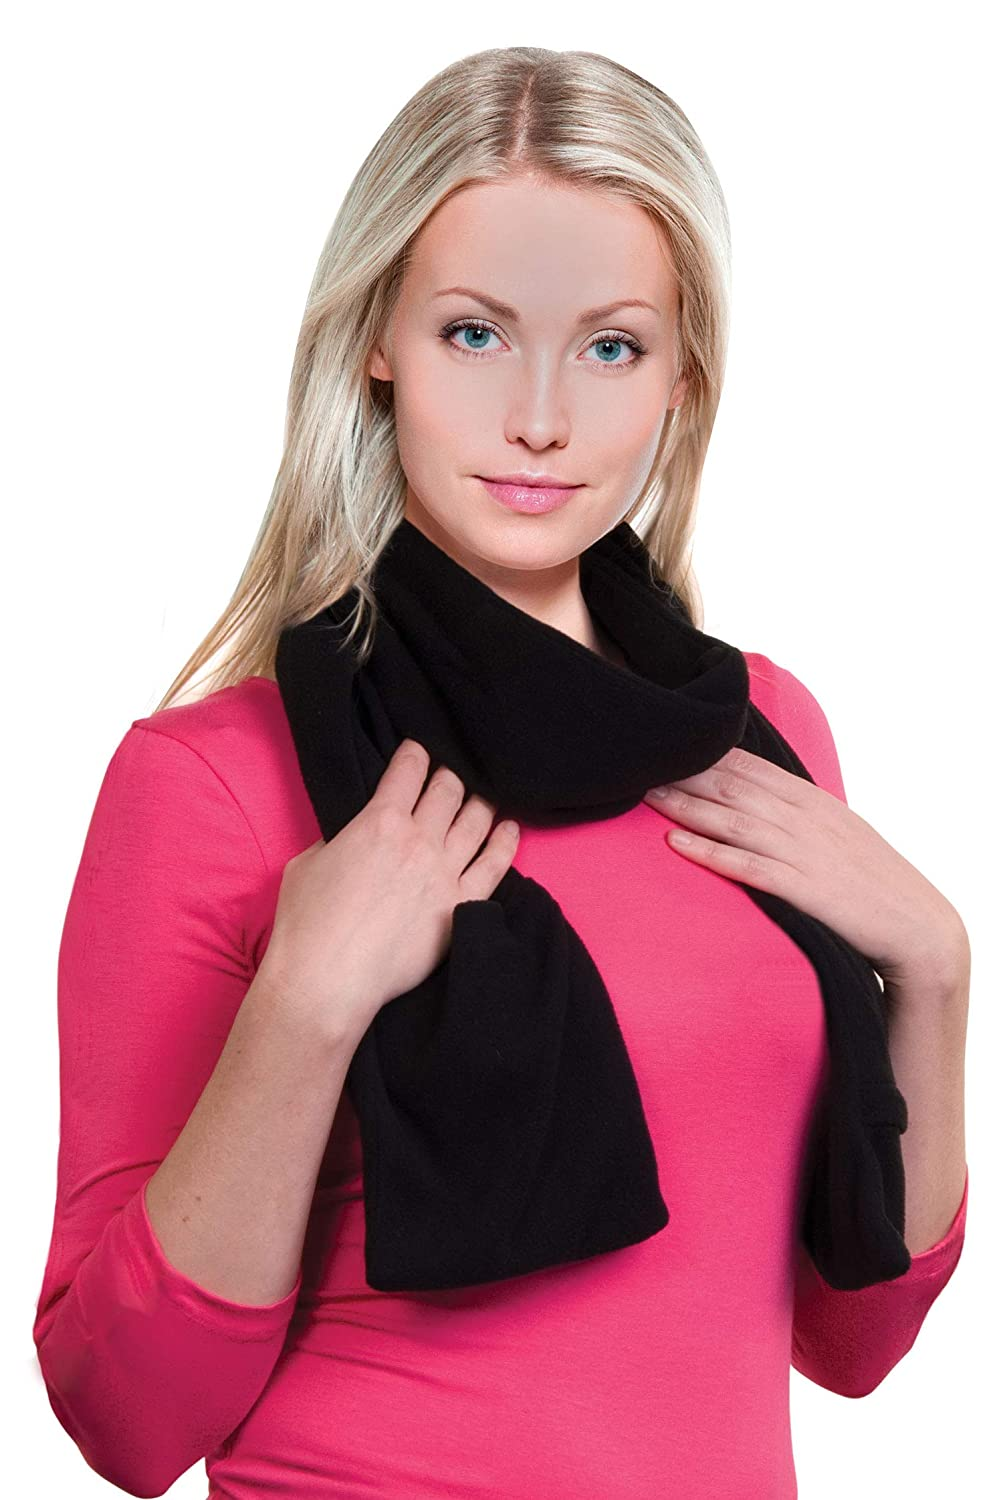 Heated Scarf with Neck Heat Pad Heated Clothing for Men Electric Battery Operated Heated Neck Wrap Cold Weather Neck Warmer Fleece Scarf with Pockets to Keep Hands Warm Heated Scarves for Women